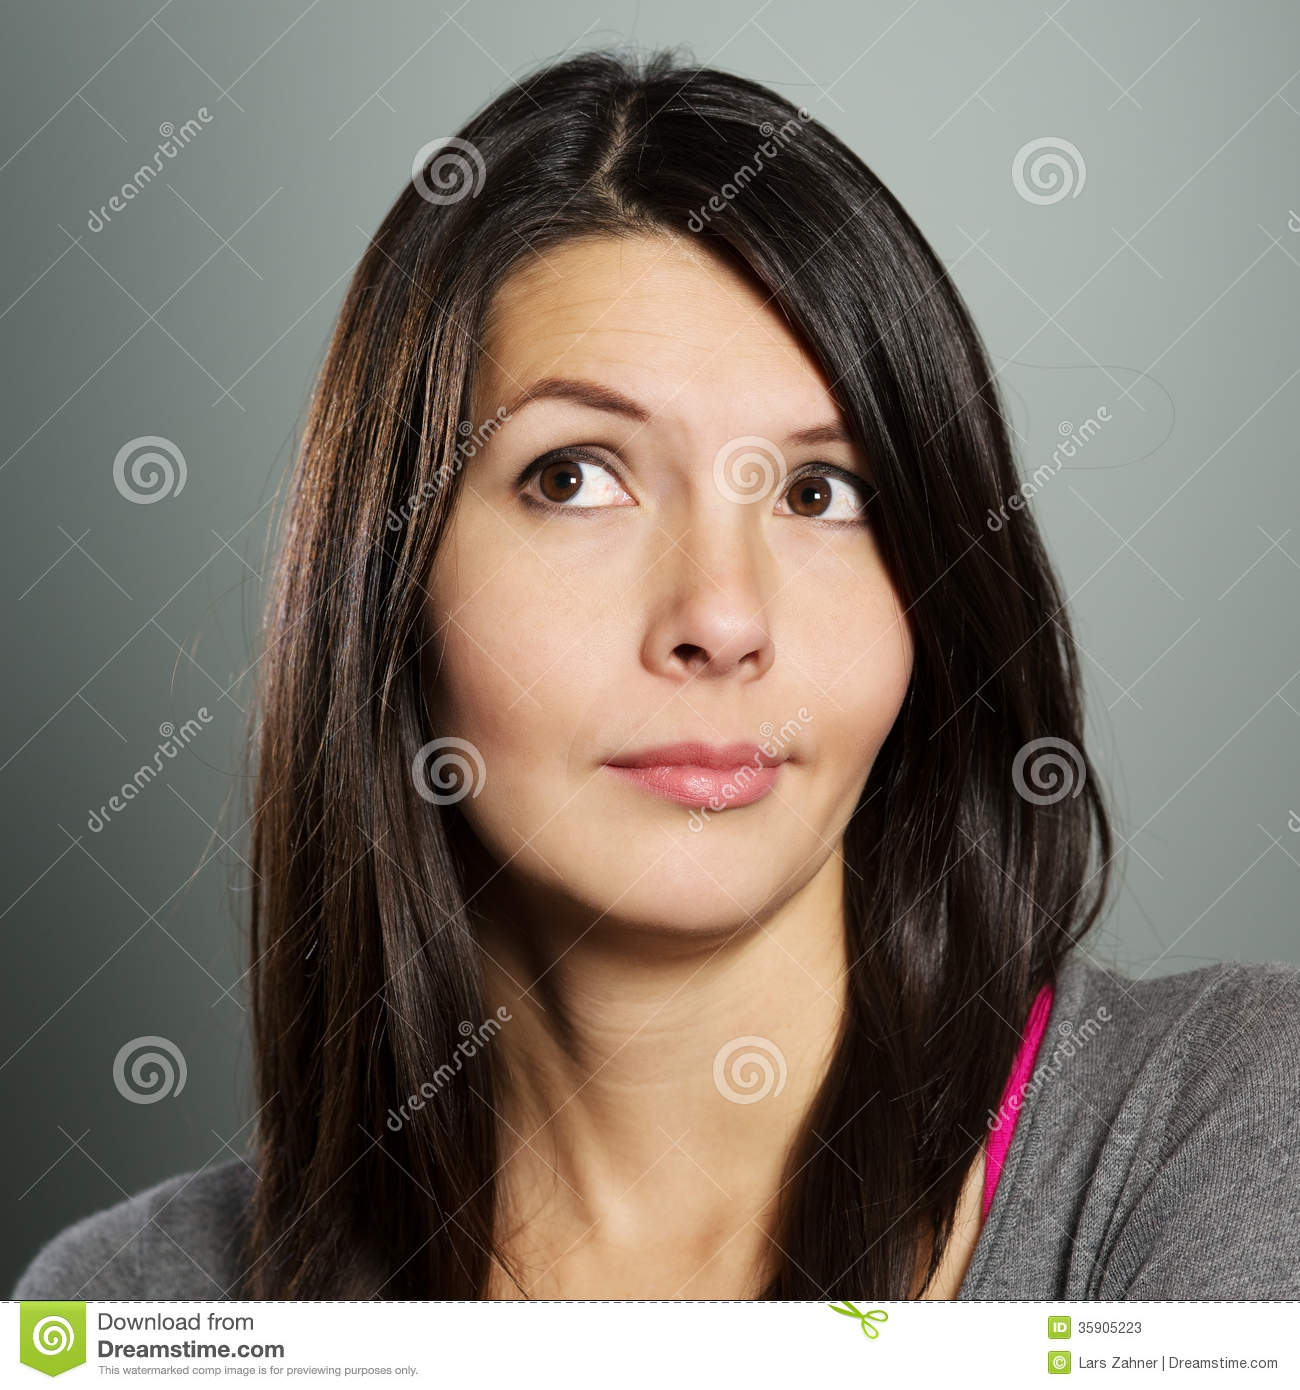 Grimace face clip art stock photo woman pulls a face in upset - Arms Attractive Bemused Expression Face Folded Sceptical Woman